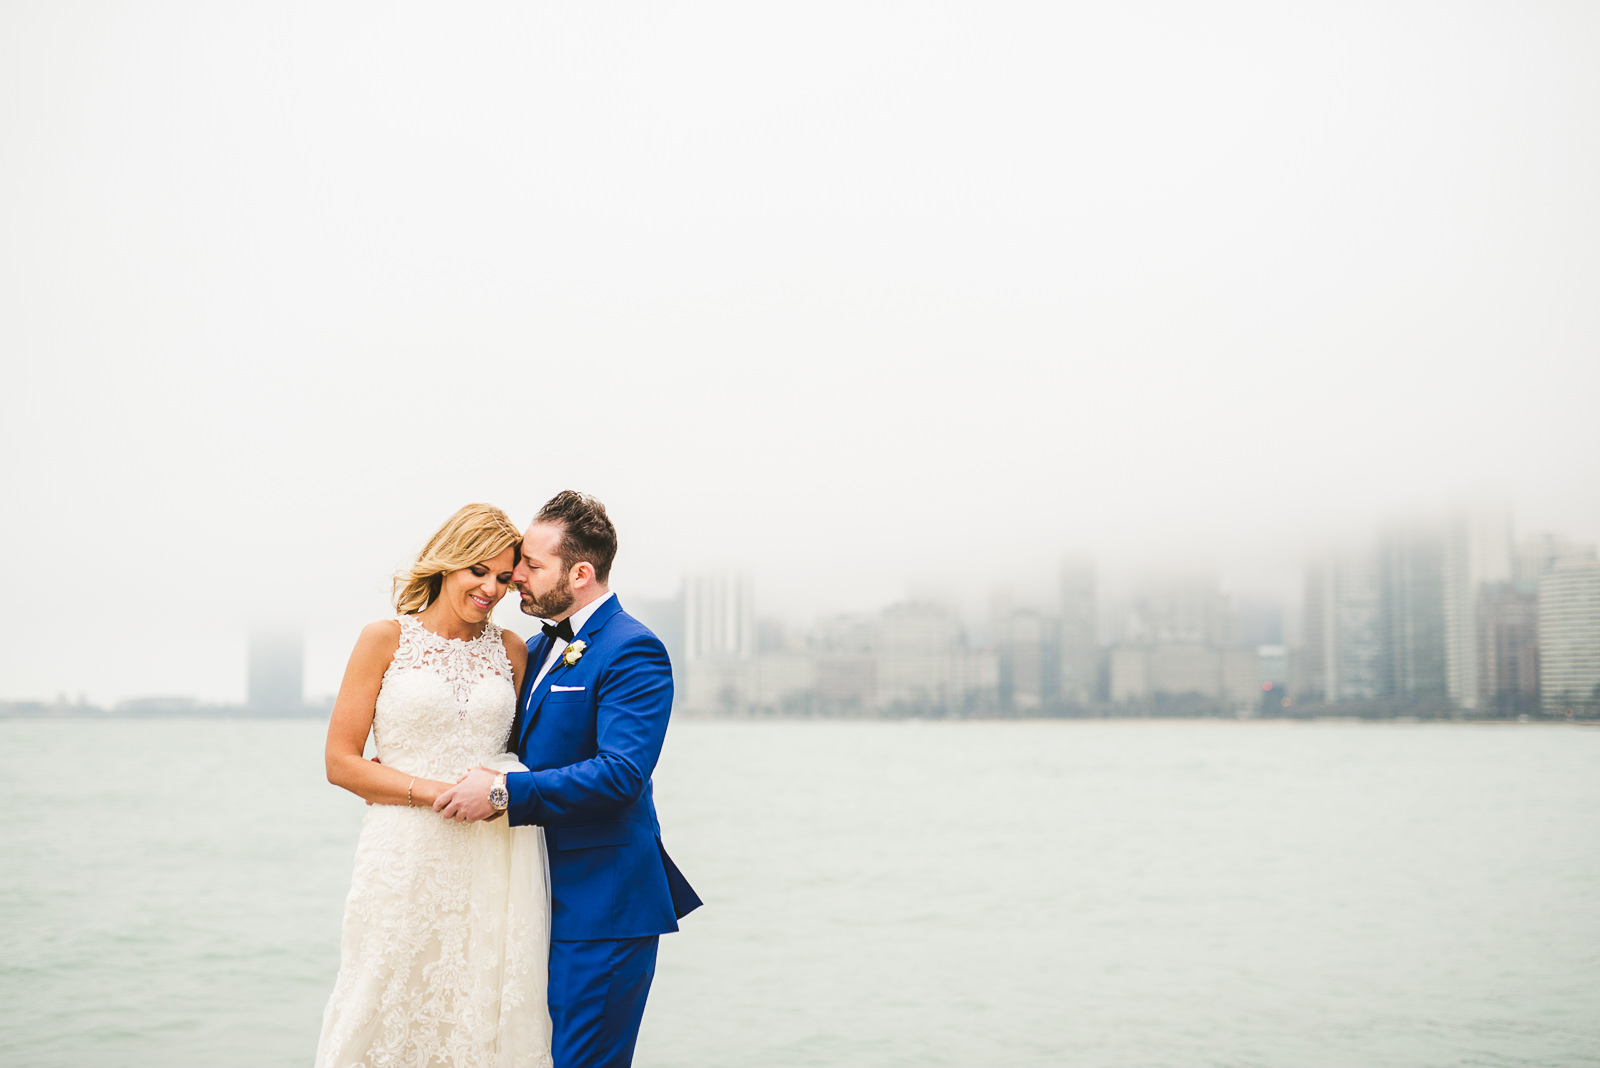 26 chicago wedding photos - Chicago Wedding Photography at Gallery 1028 // Courtnie + David